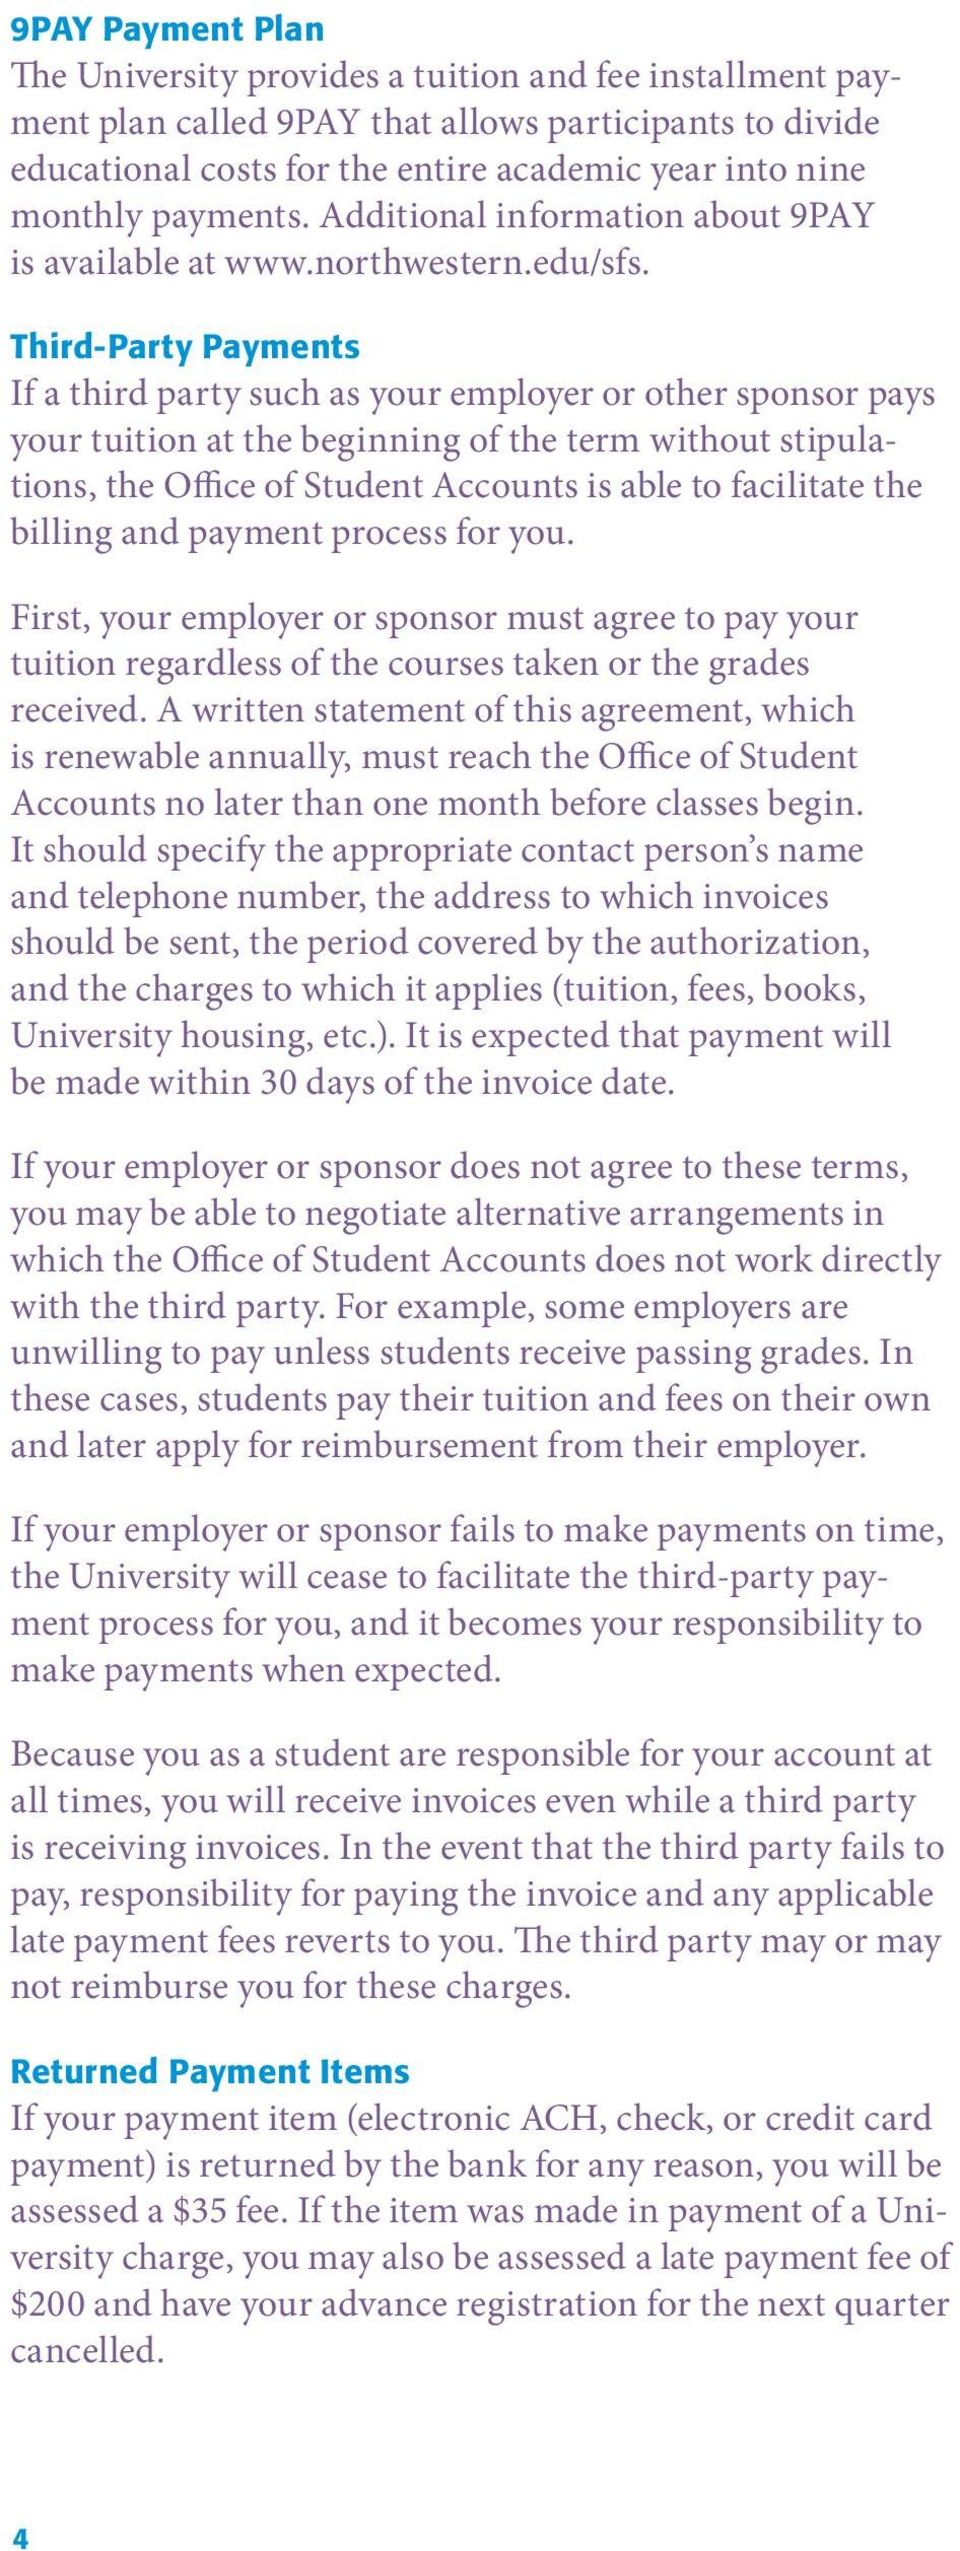 Third-Party Payments If a third party such as your employer or other sponsor pays your tuition at the beginning of the term without stipulations, the Office of Student Accounts is able to facilitate